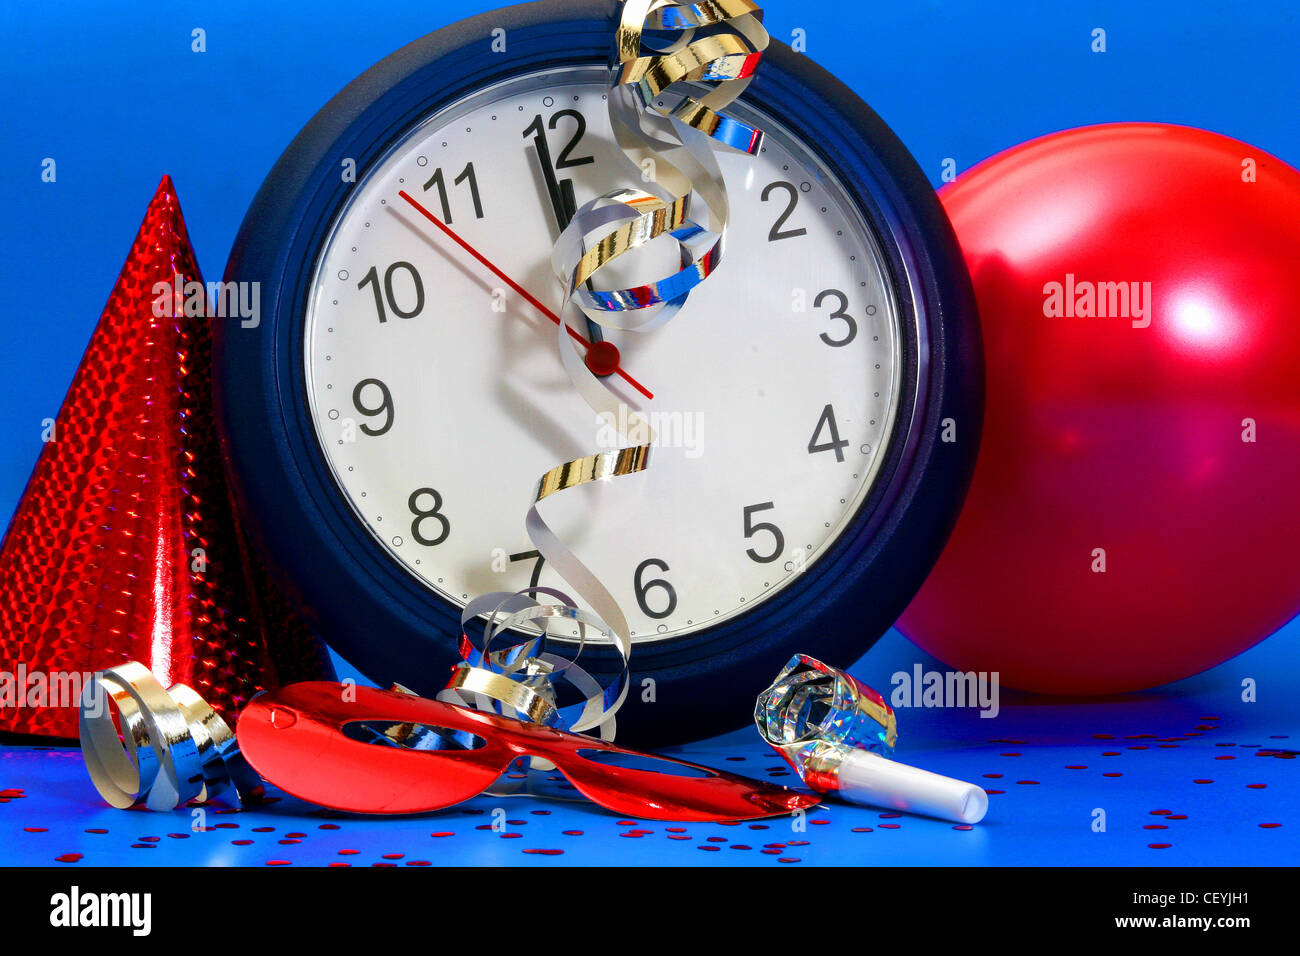 A clock stopped at seconds to midnight, a red metallic party hat next to it, a red balloon, red mask, metallic gold - Stock Image